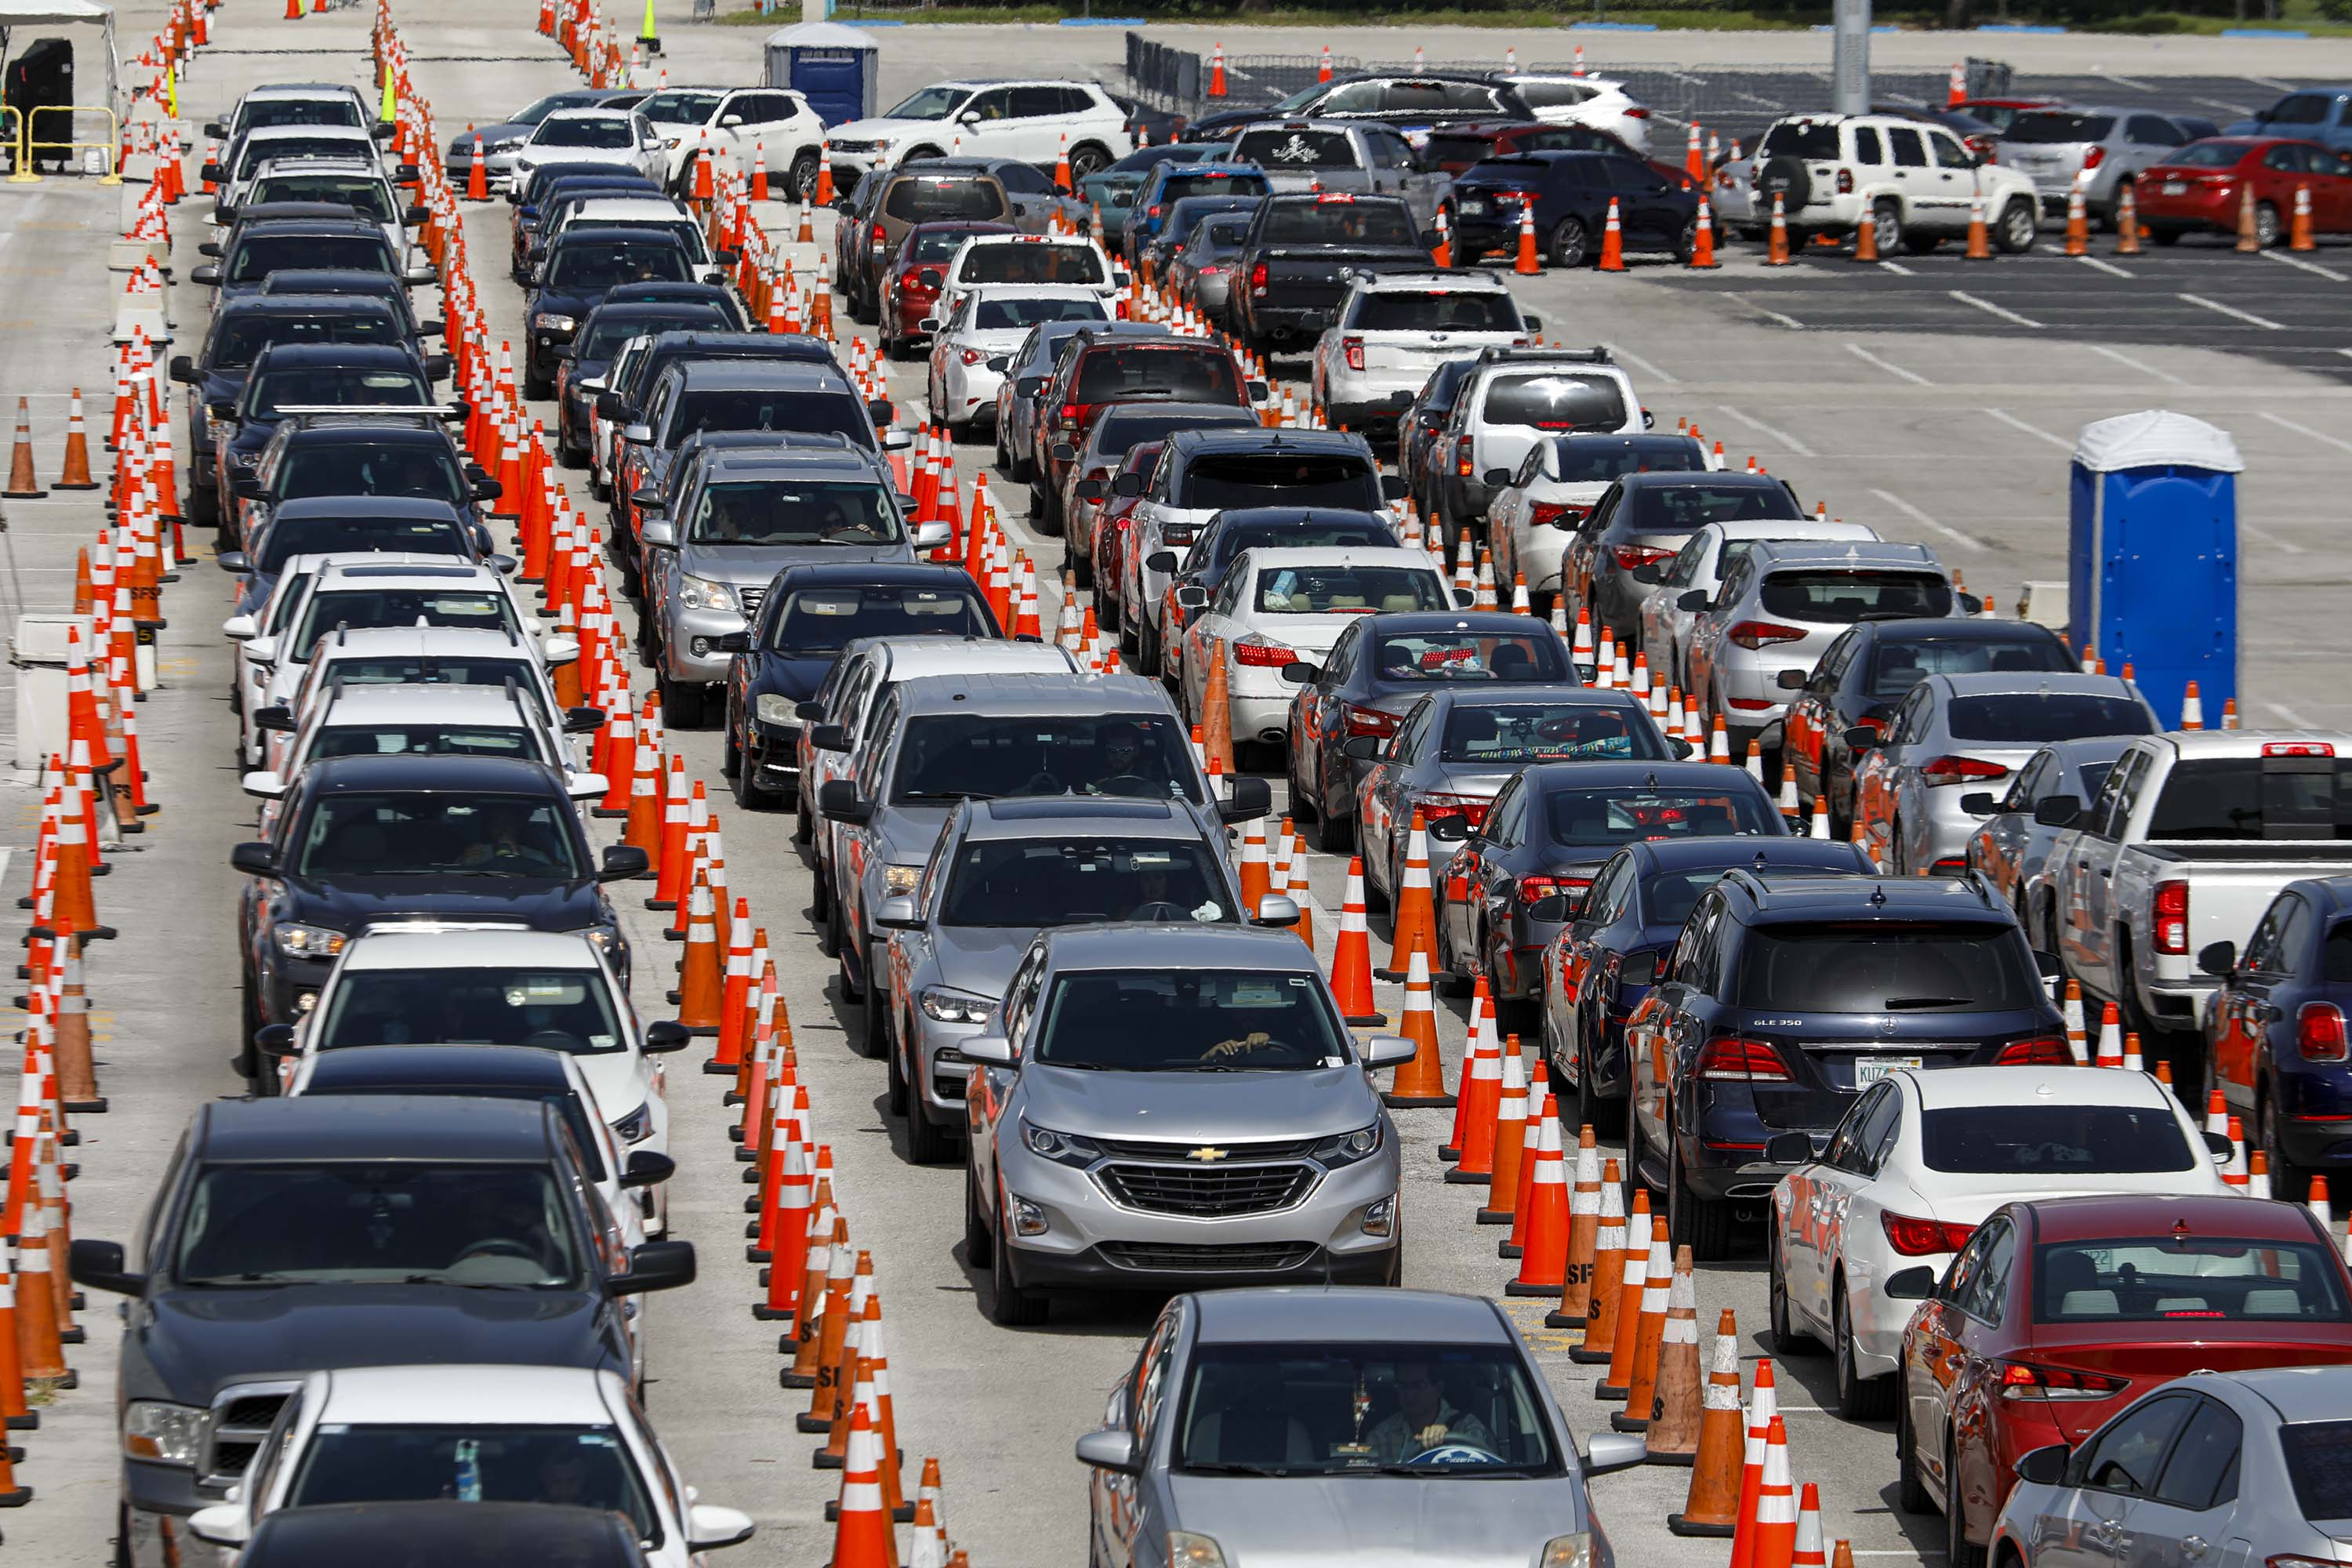 People in their vehicles wait to enter a Covid-19 drive-thru testing site at Hard Rock Stadium in Miami Gardens, Florida, on June 30.